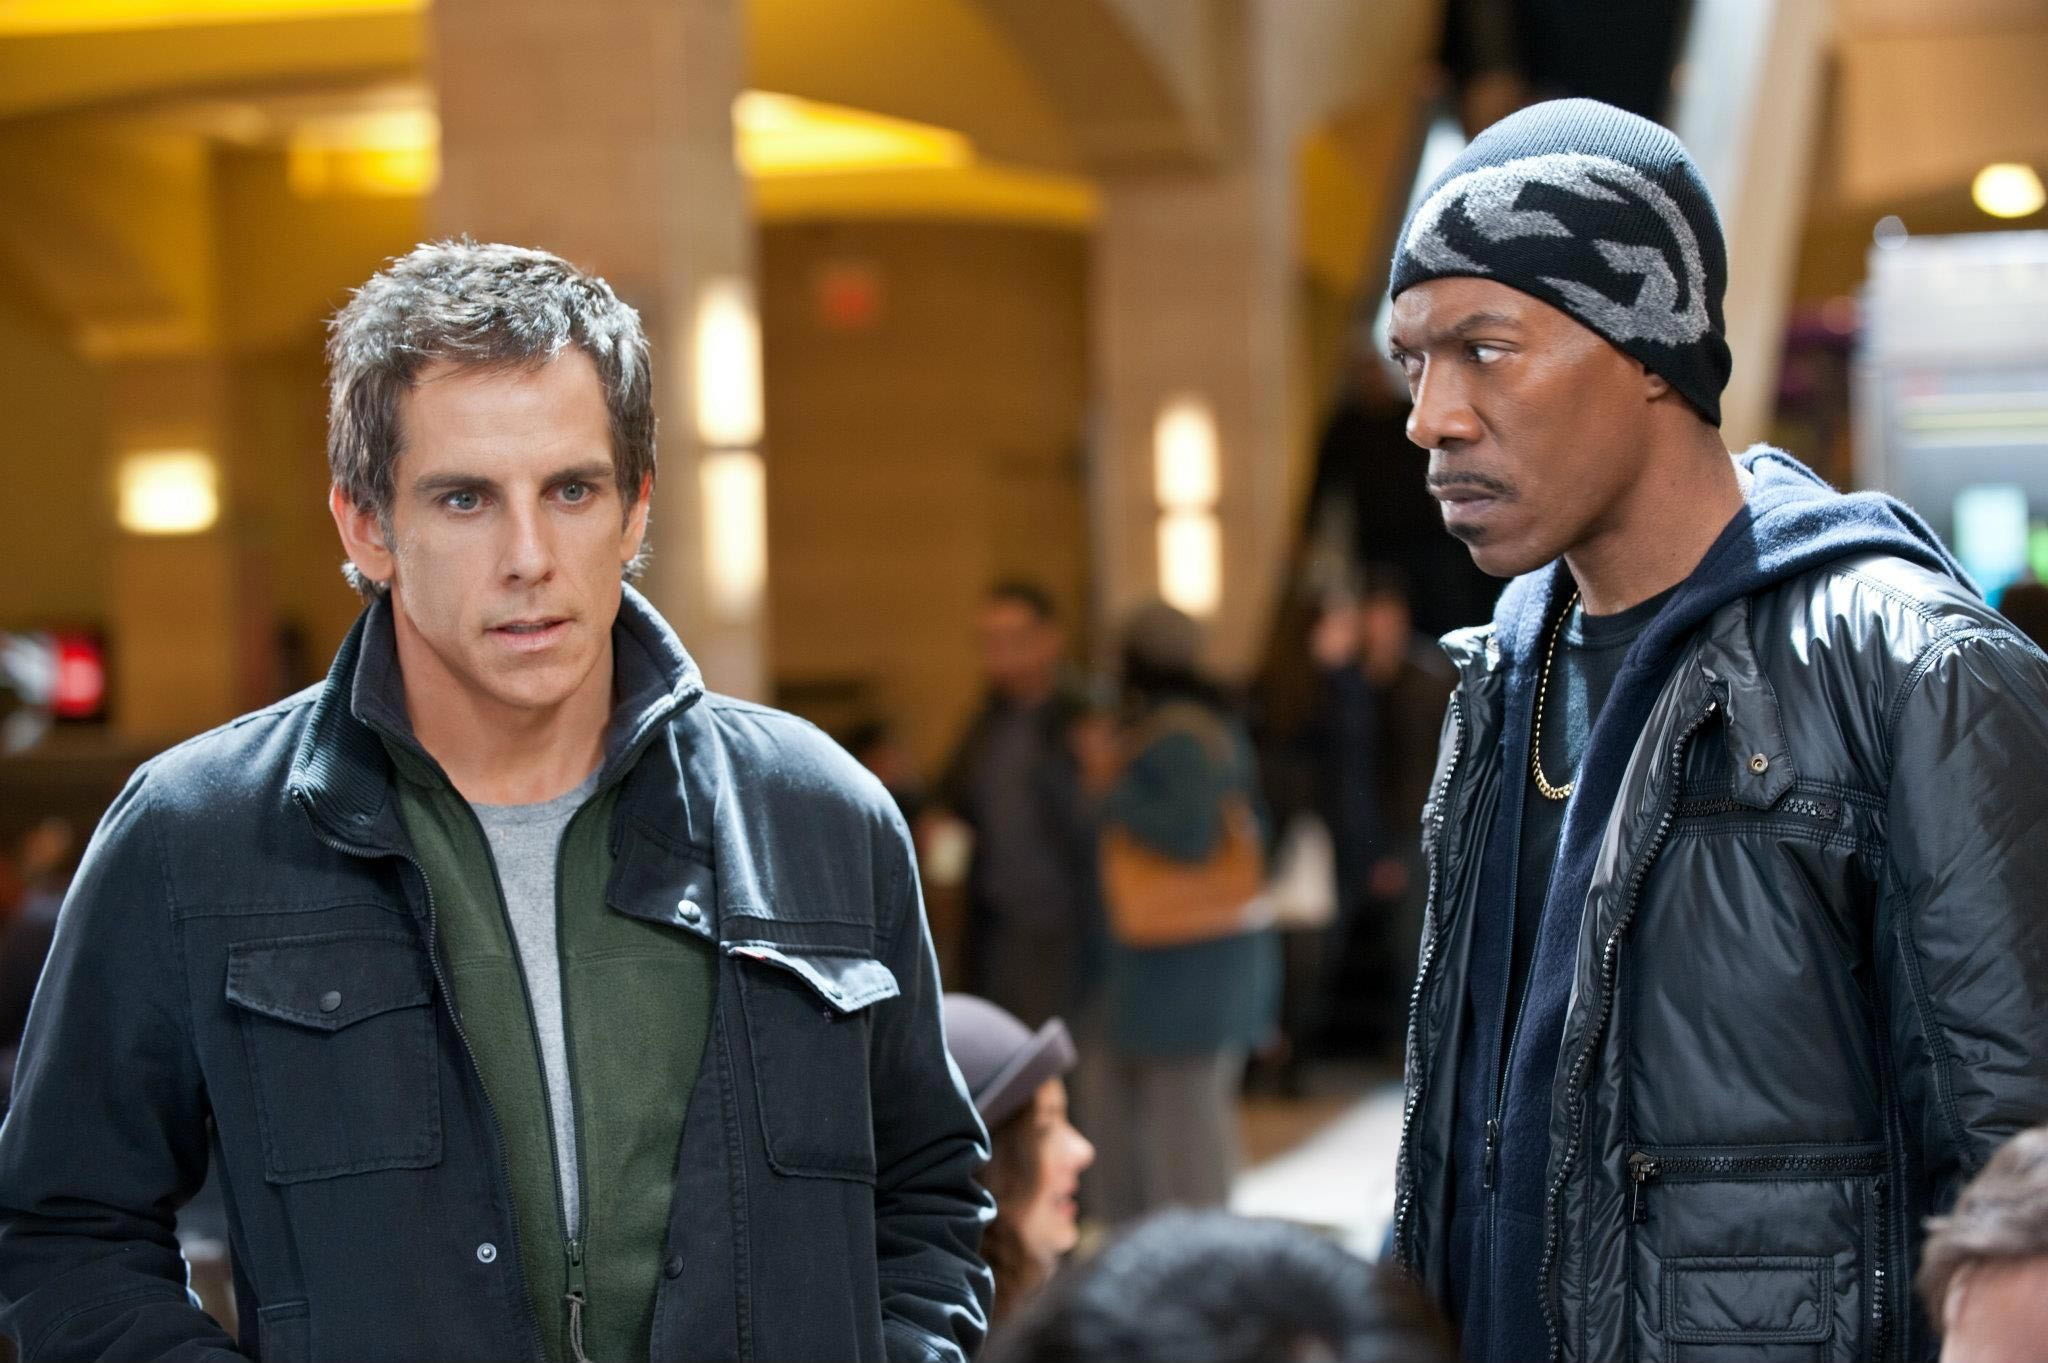 Televisiepremière: Tower Heist